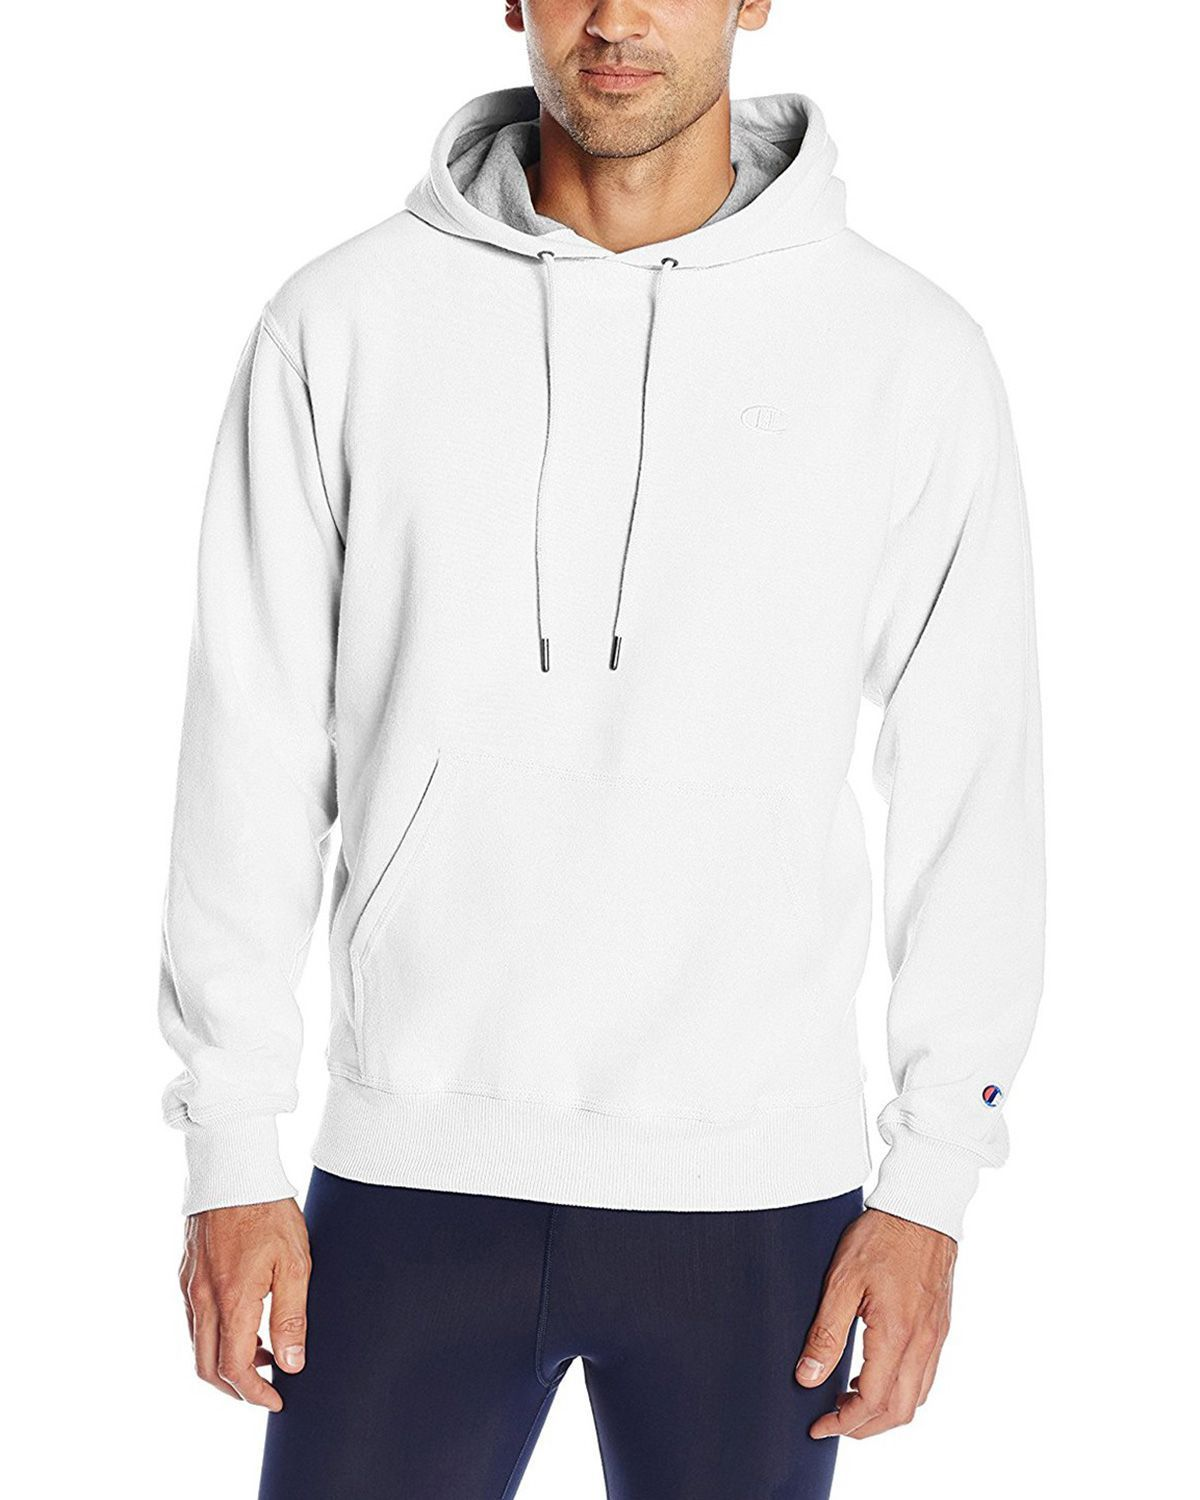 Champion S0889 Mens Fleece Pullover Hoodie - Swiss Blue - XXL S0889